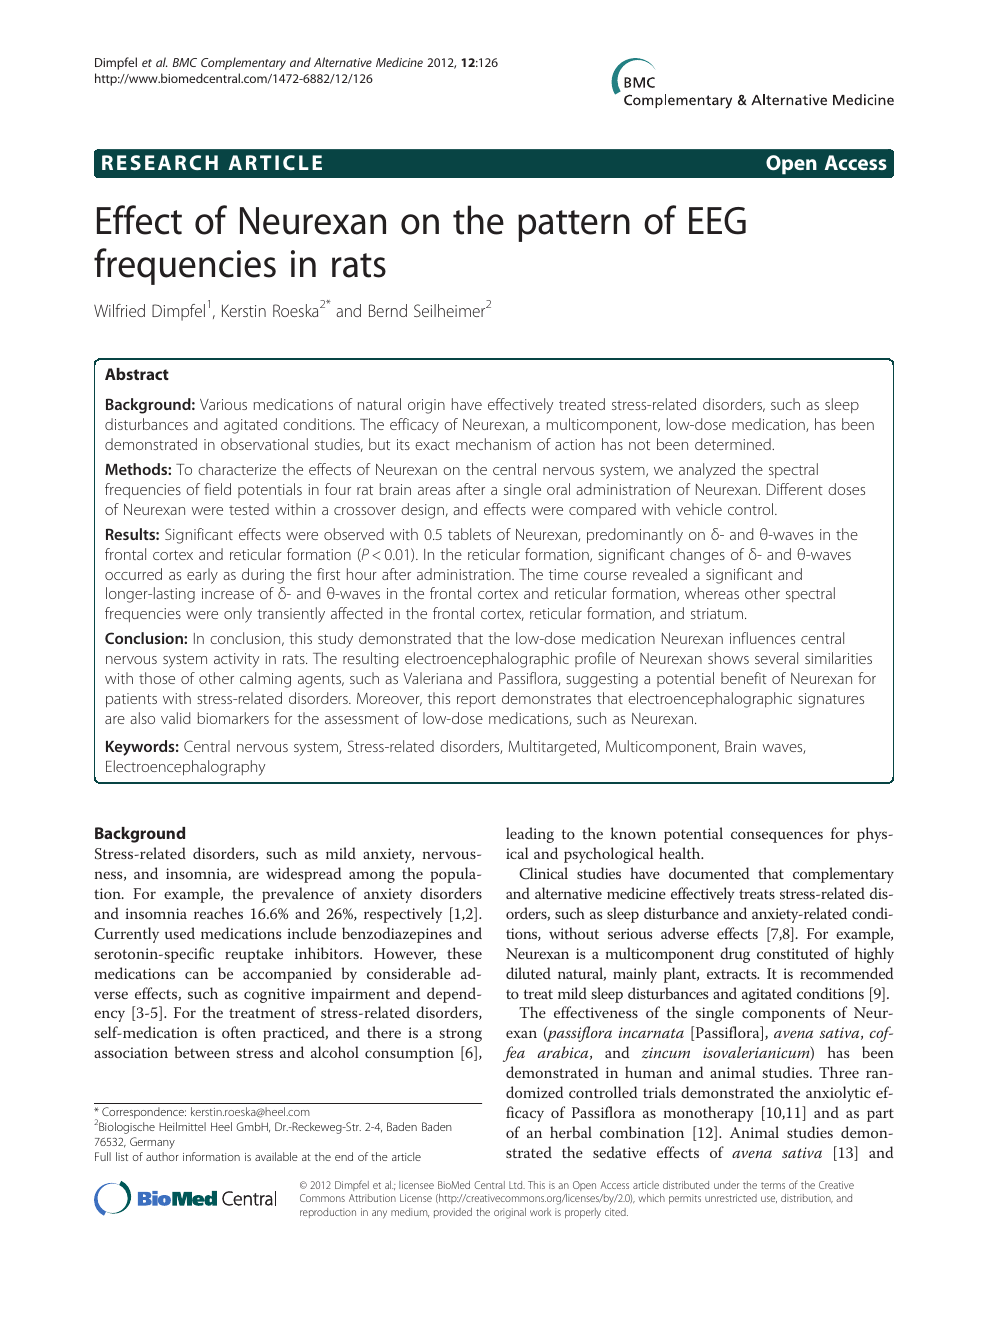 Effect of Neurexan on the pattern of EEG frequencies in rats